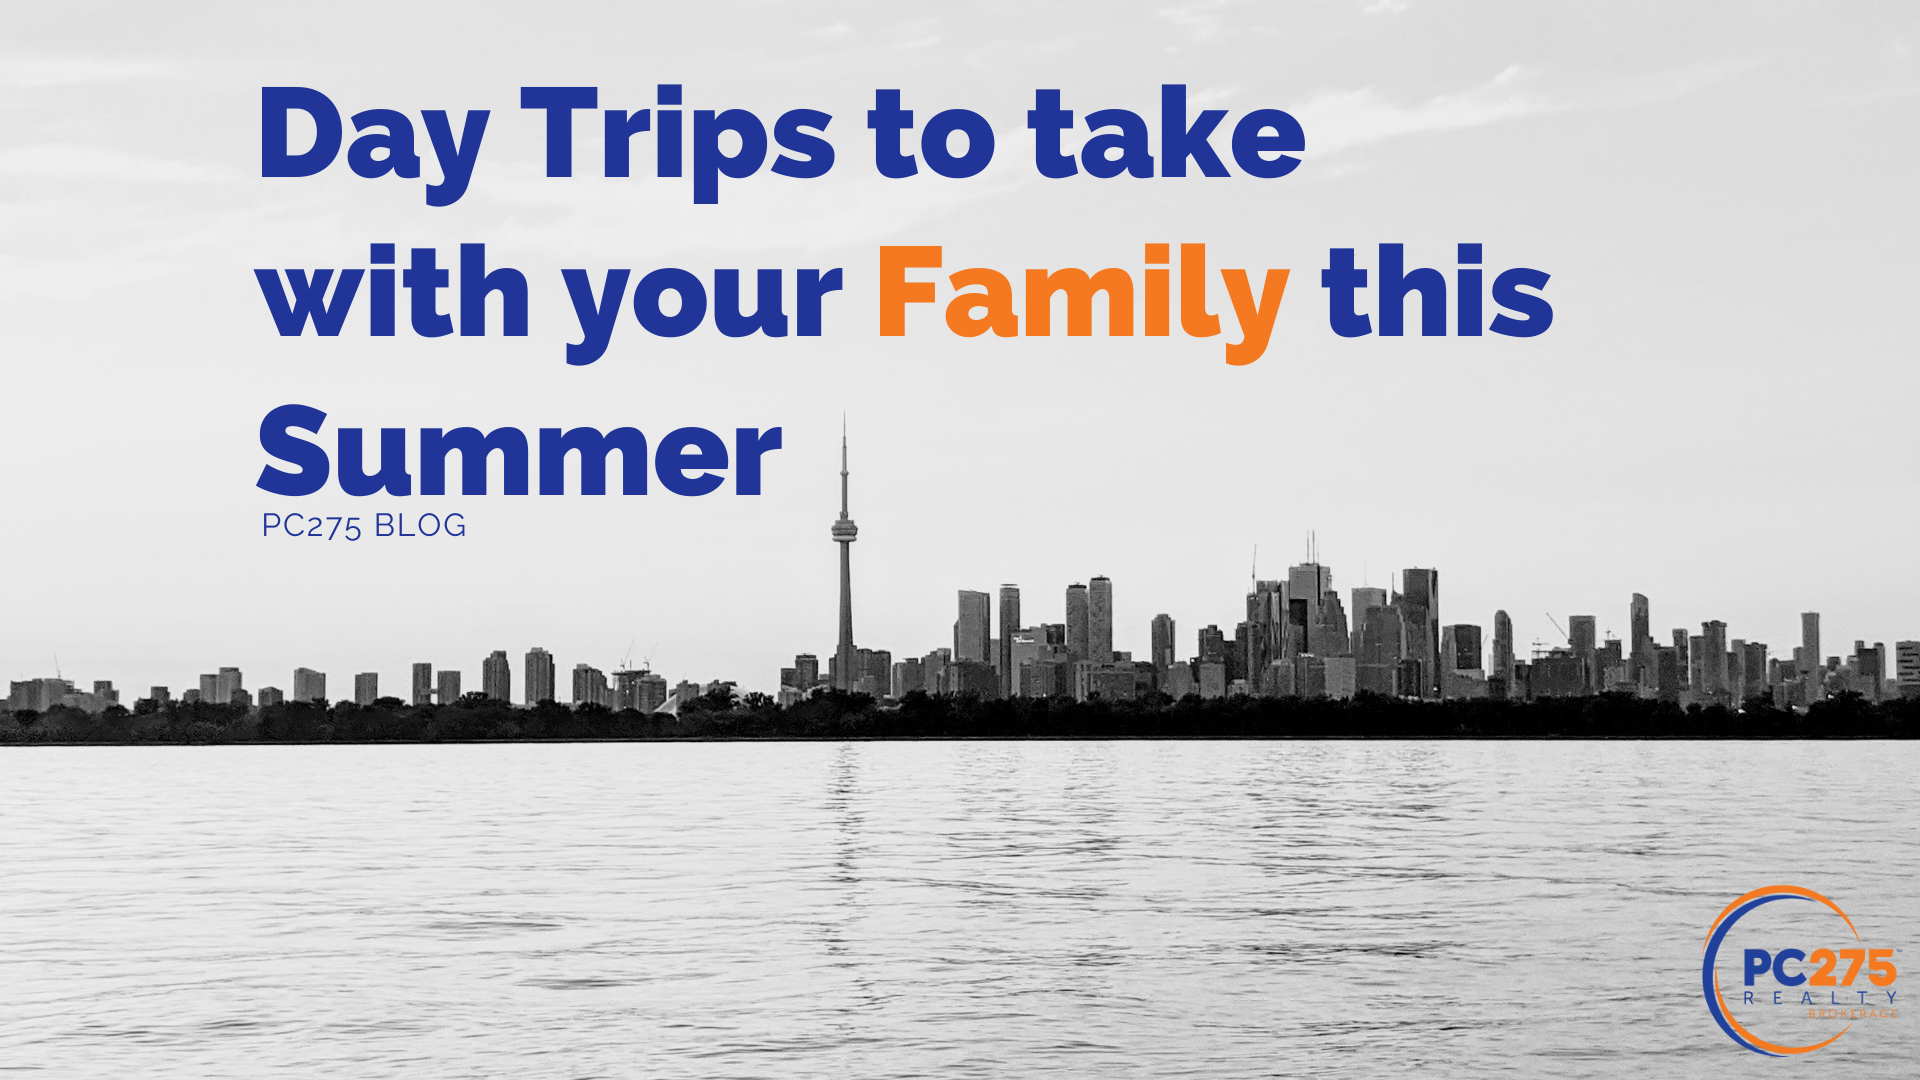 Ontario Day Trips to take with your family this summer